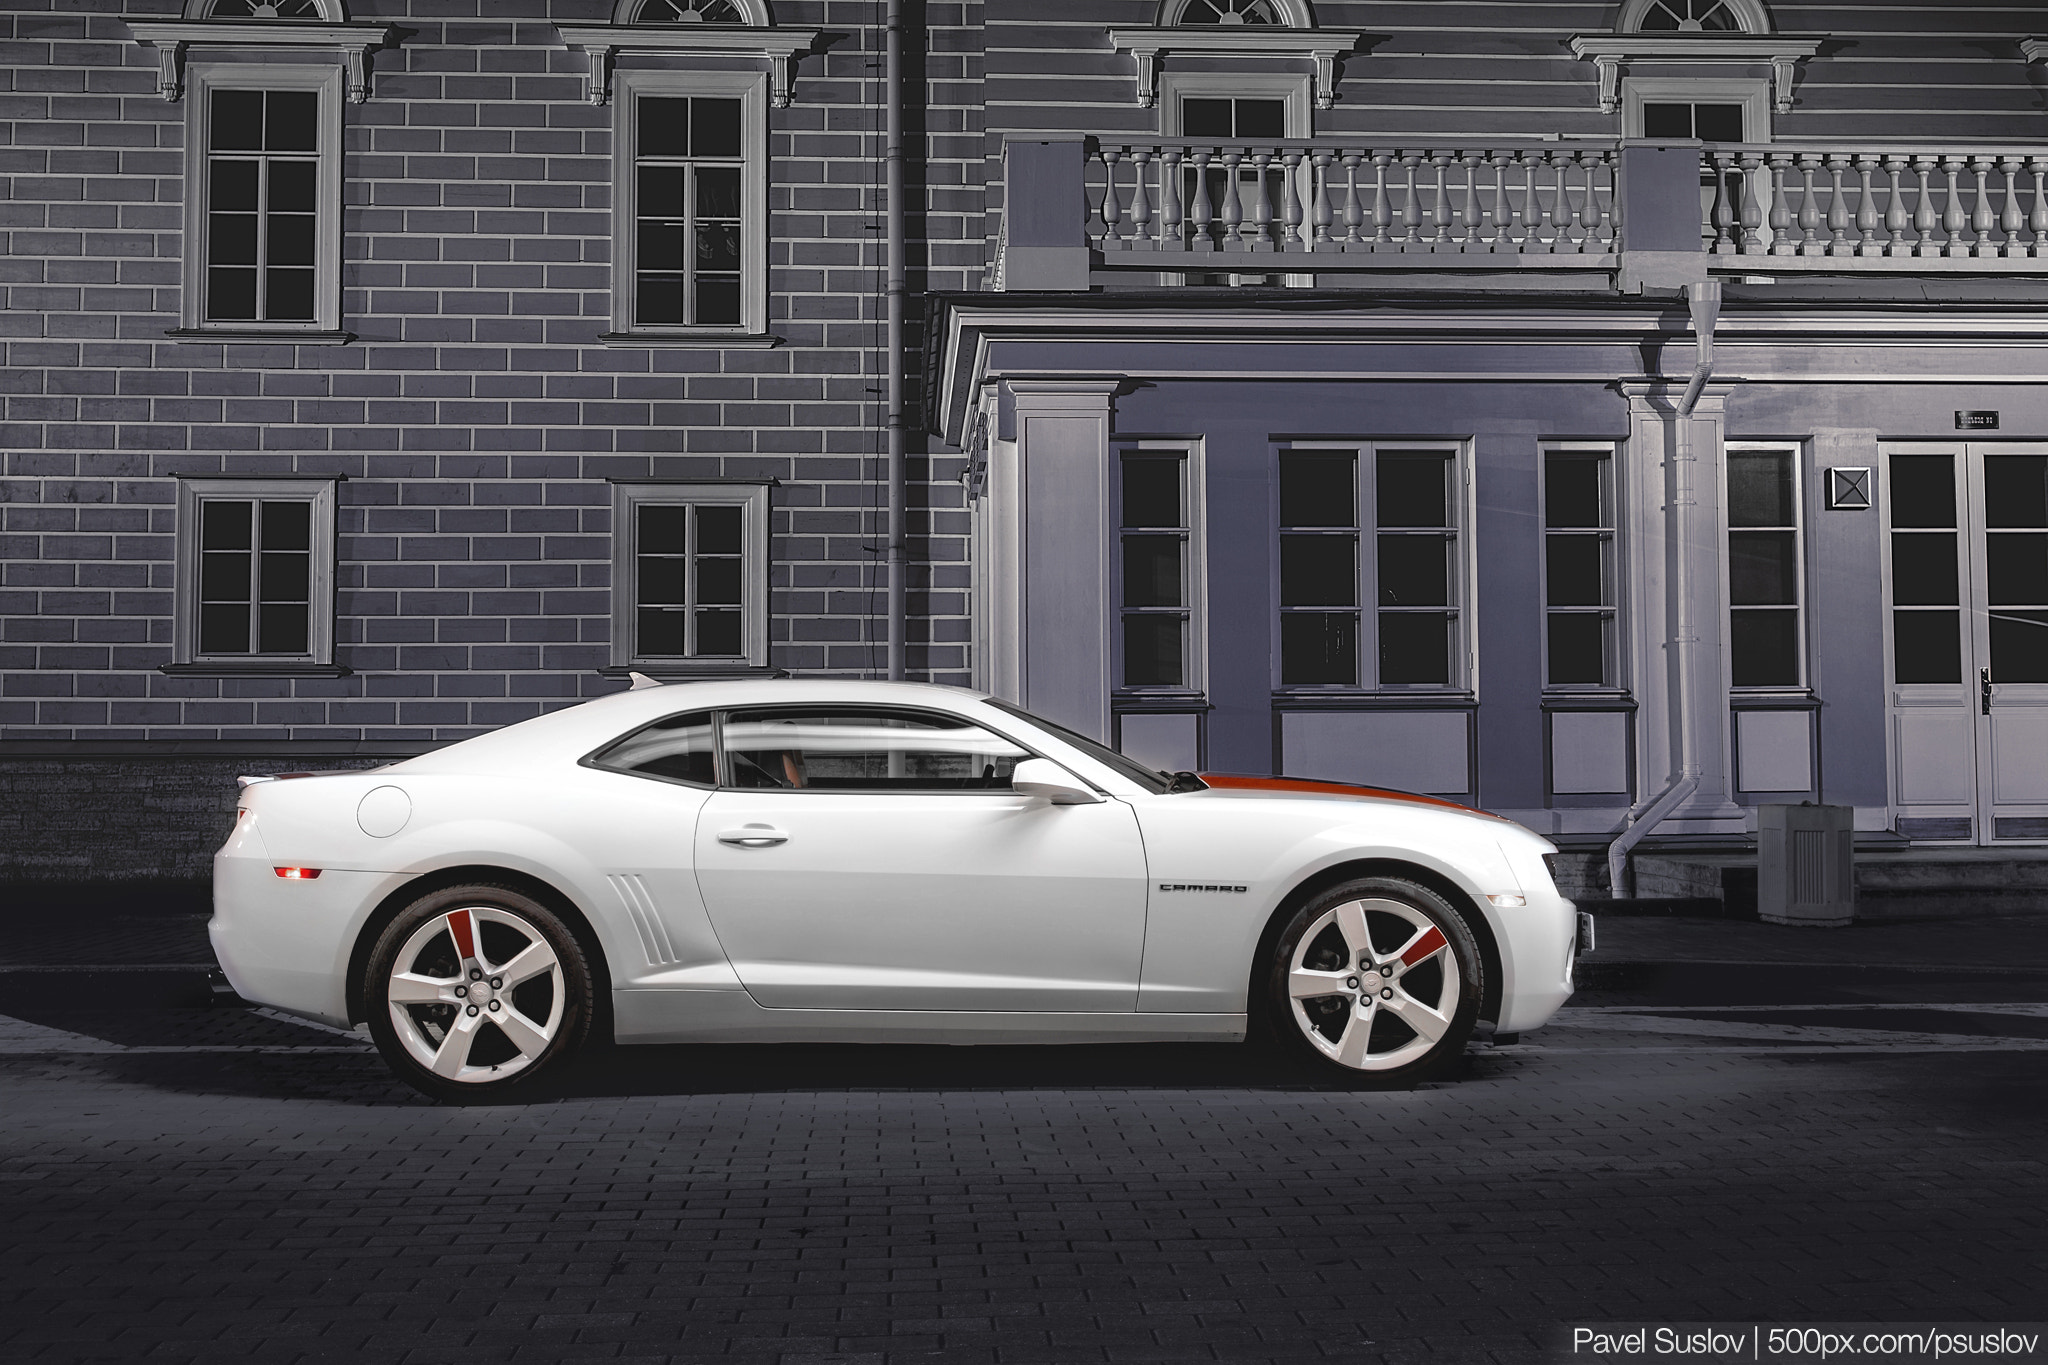 Photograph Chevy Camaro by Pavel Suslov on 500px